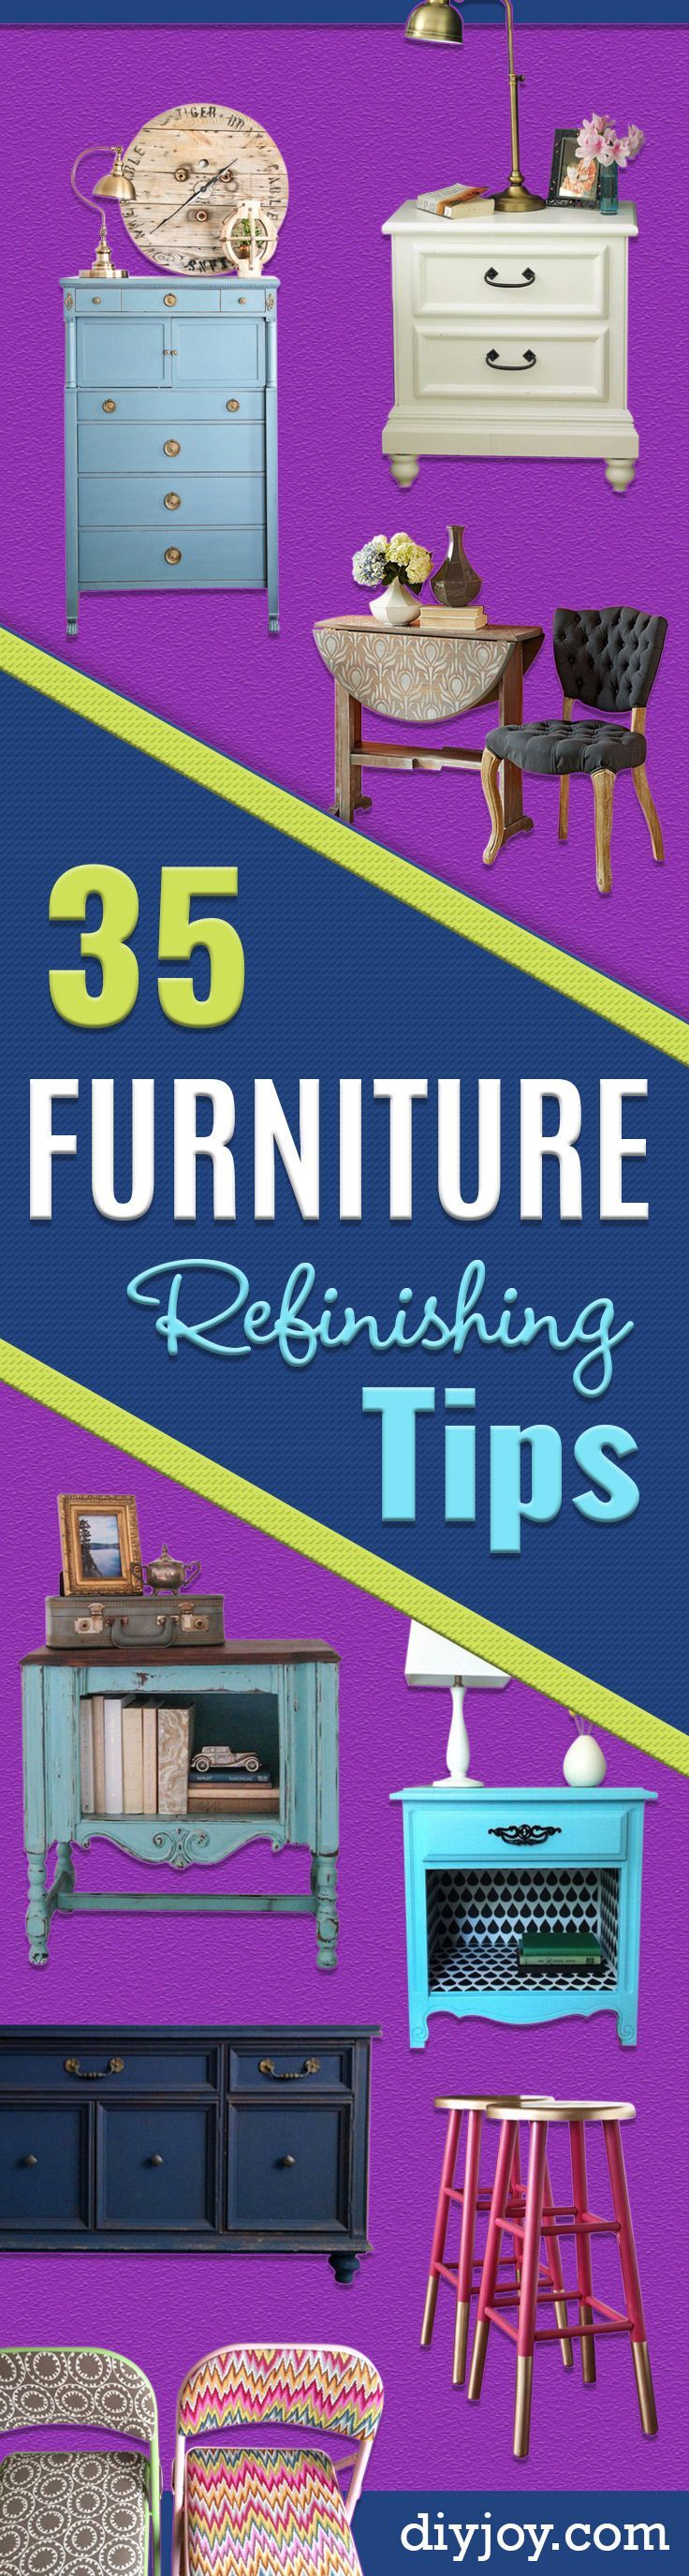 DIY Furniture Refinishing Tips - Creative Ways to Redo Furniture With Paint and ...